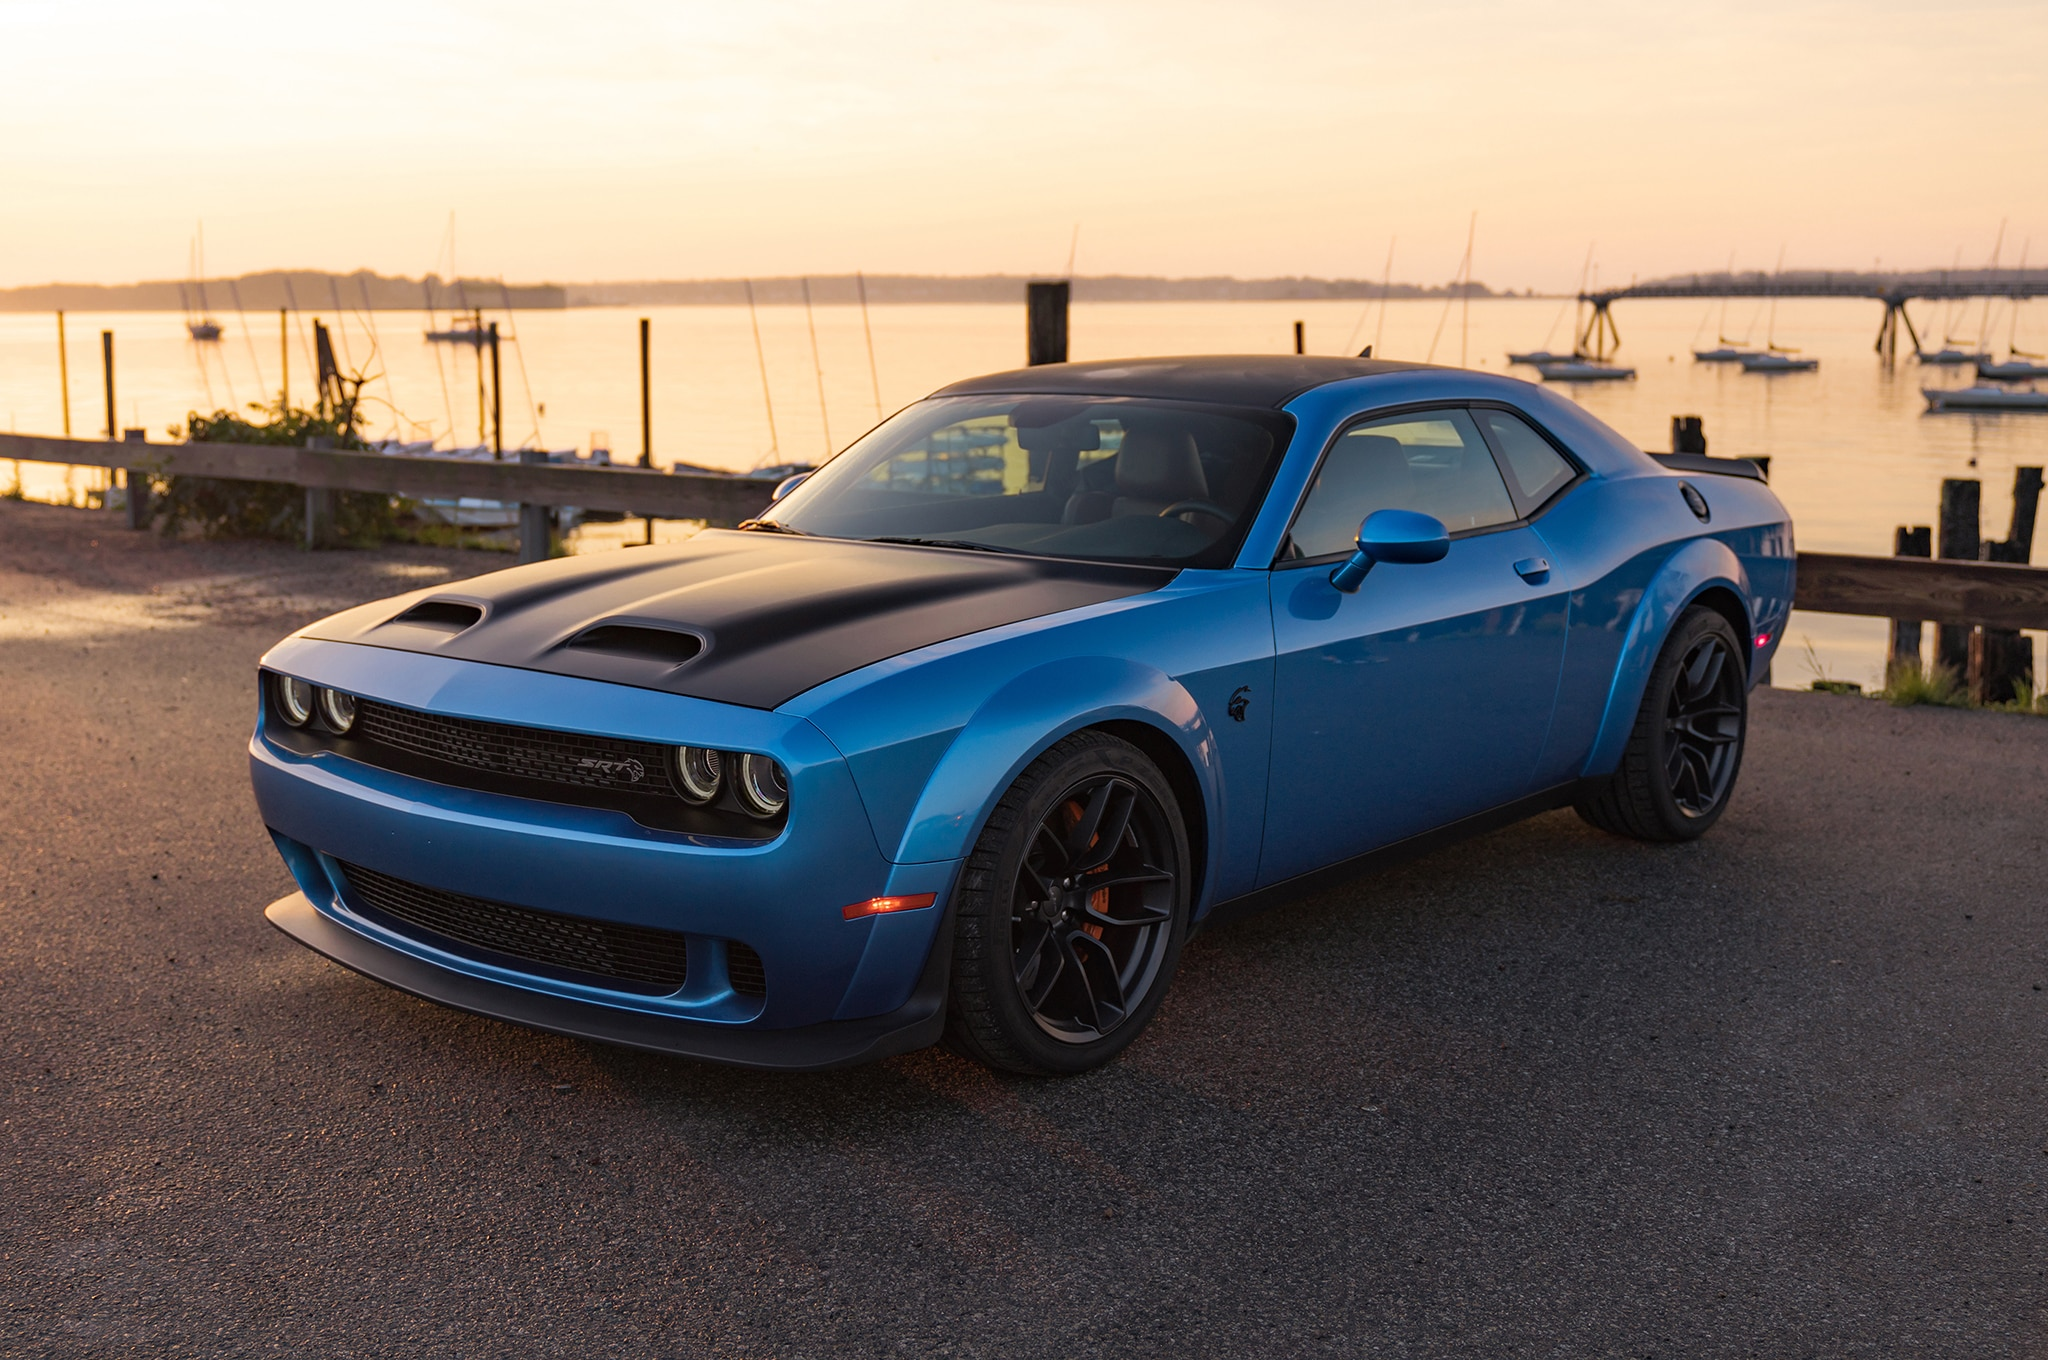 2019 dodge challenger srt hellcat redeye enters production. Black Bedroom Furniture Sets. Home Design Ideas